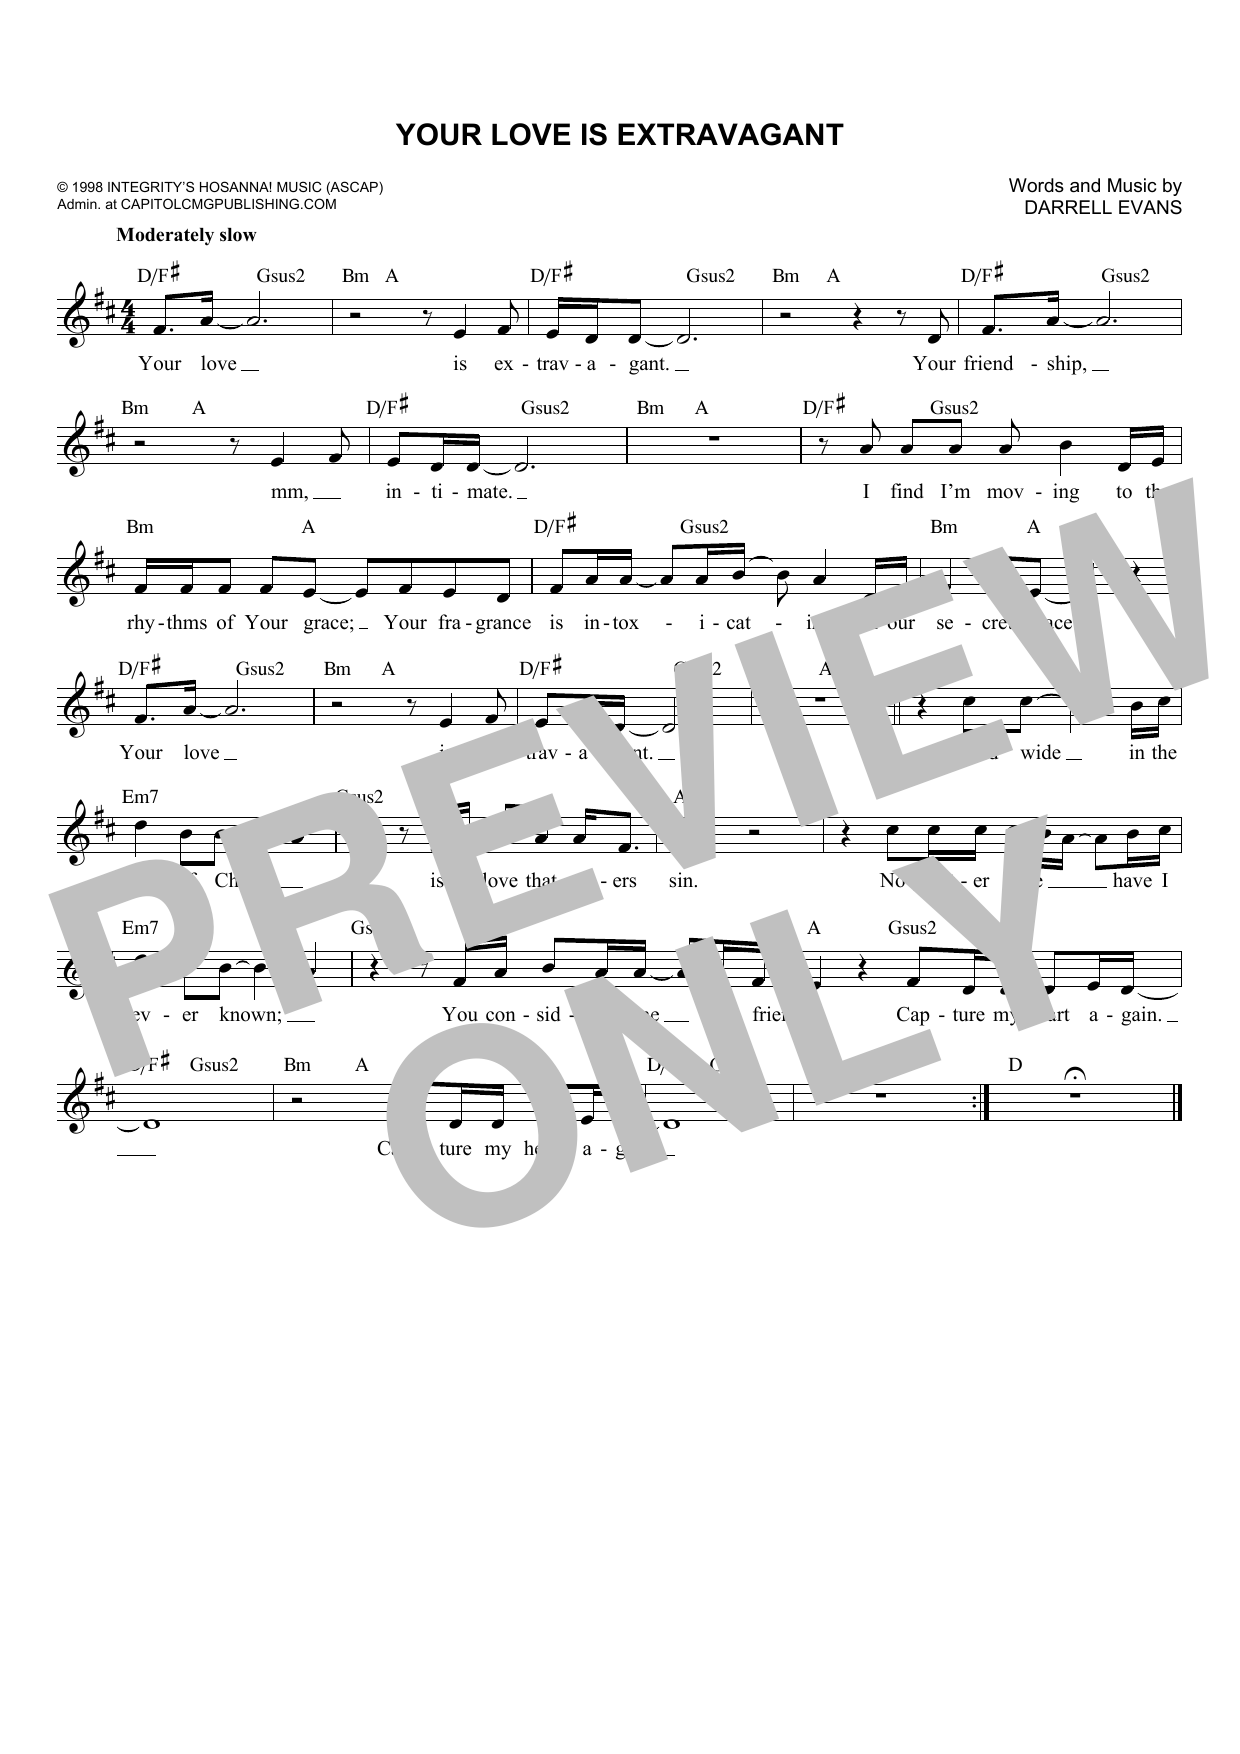 Darrell Evans Your Love Is Extravagant sheet music notes and chords. Download Printable PDF.